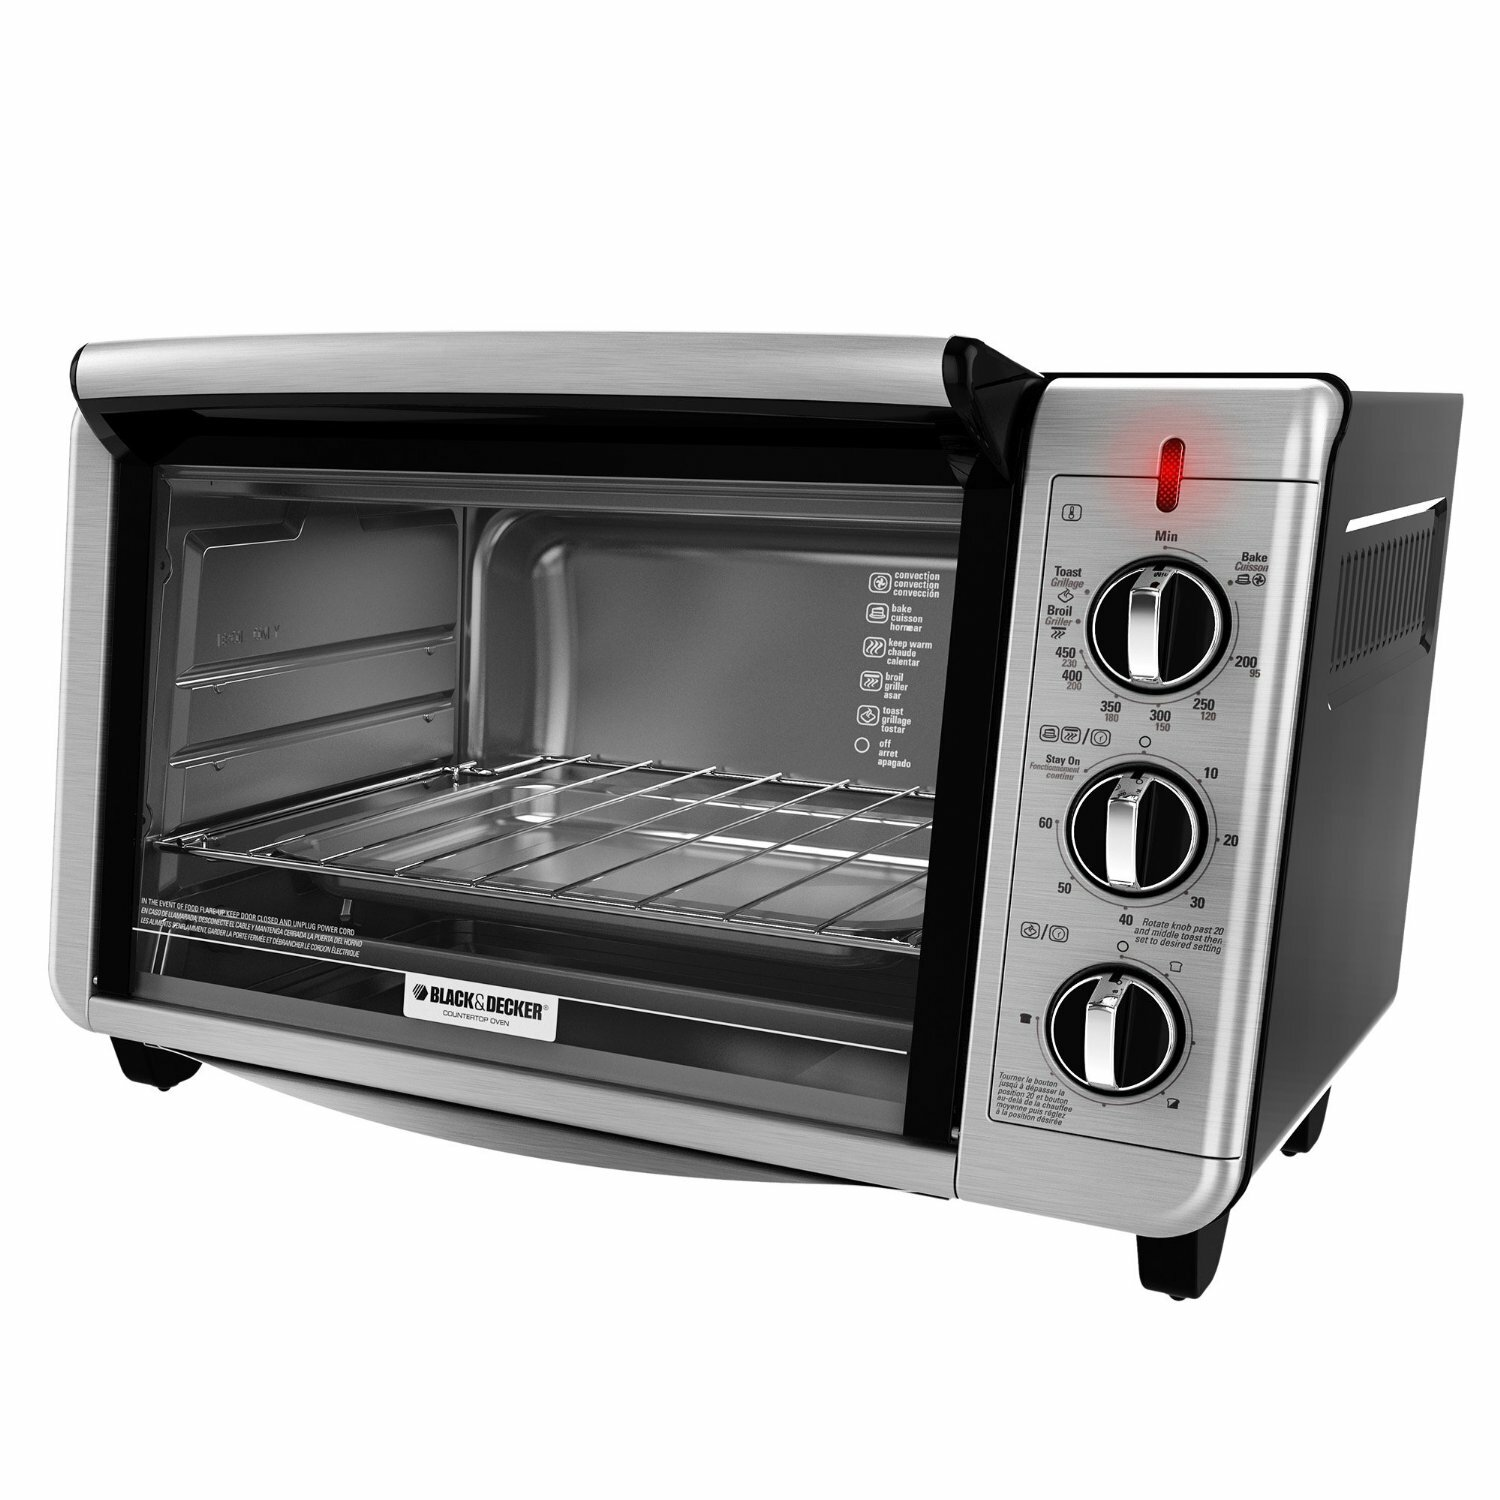 decker toaster wide p extra wid oven prod qlt hei slice black